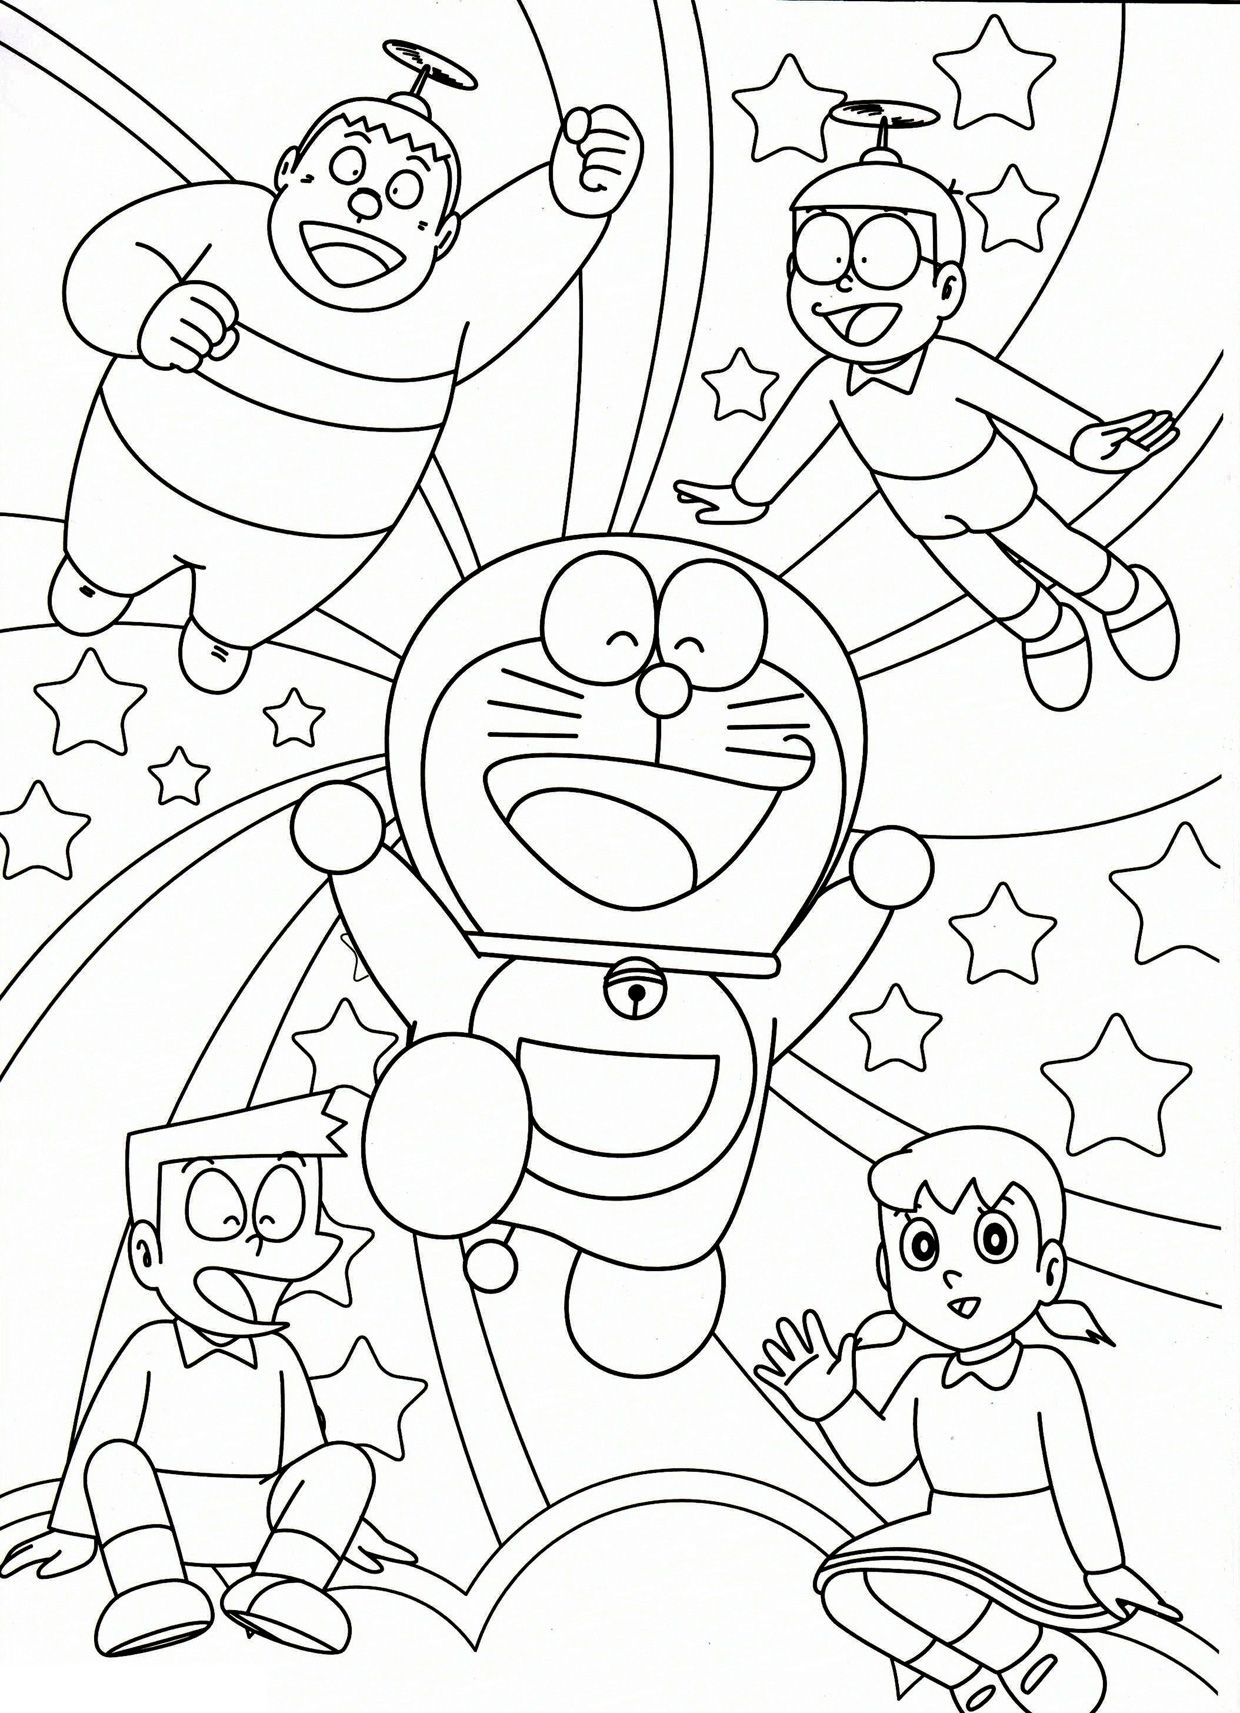 Doraemon Images And Wallpaper For Free Cartoon Coloring Pages Free Coloring Pages Coloring Pages